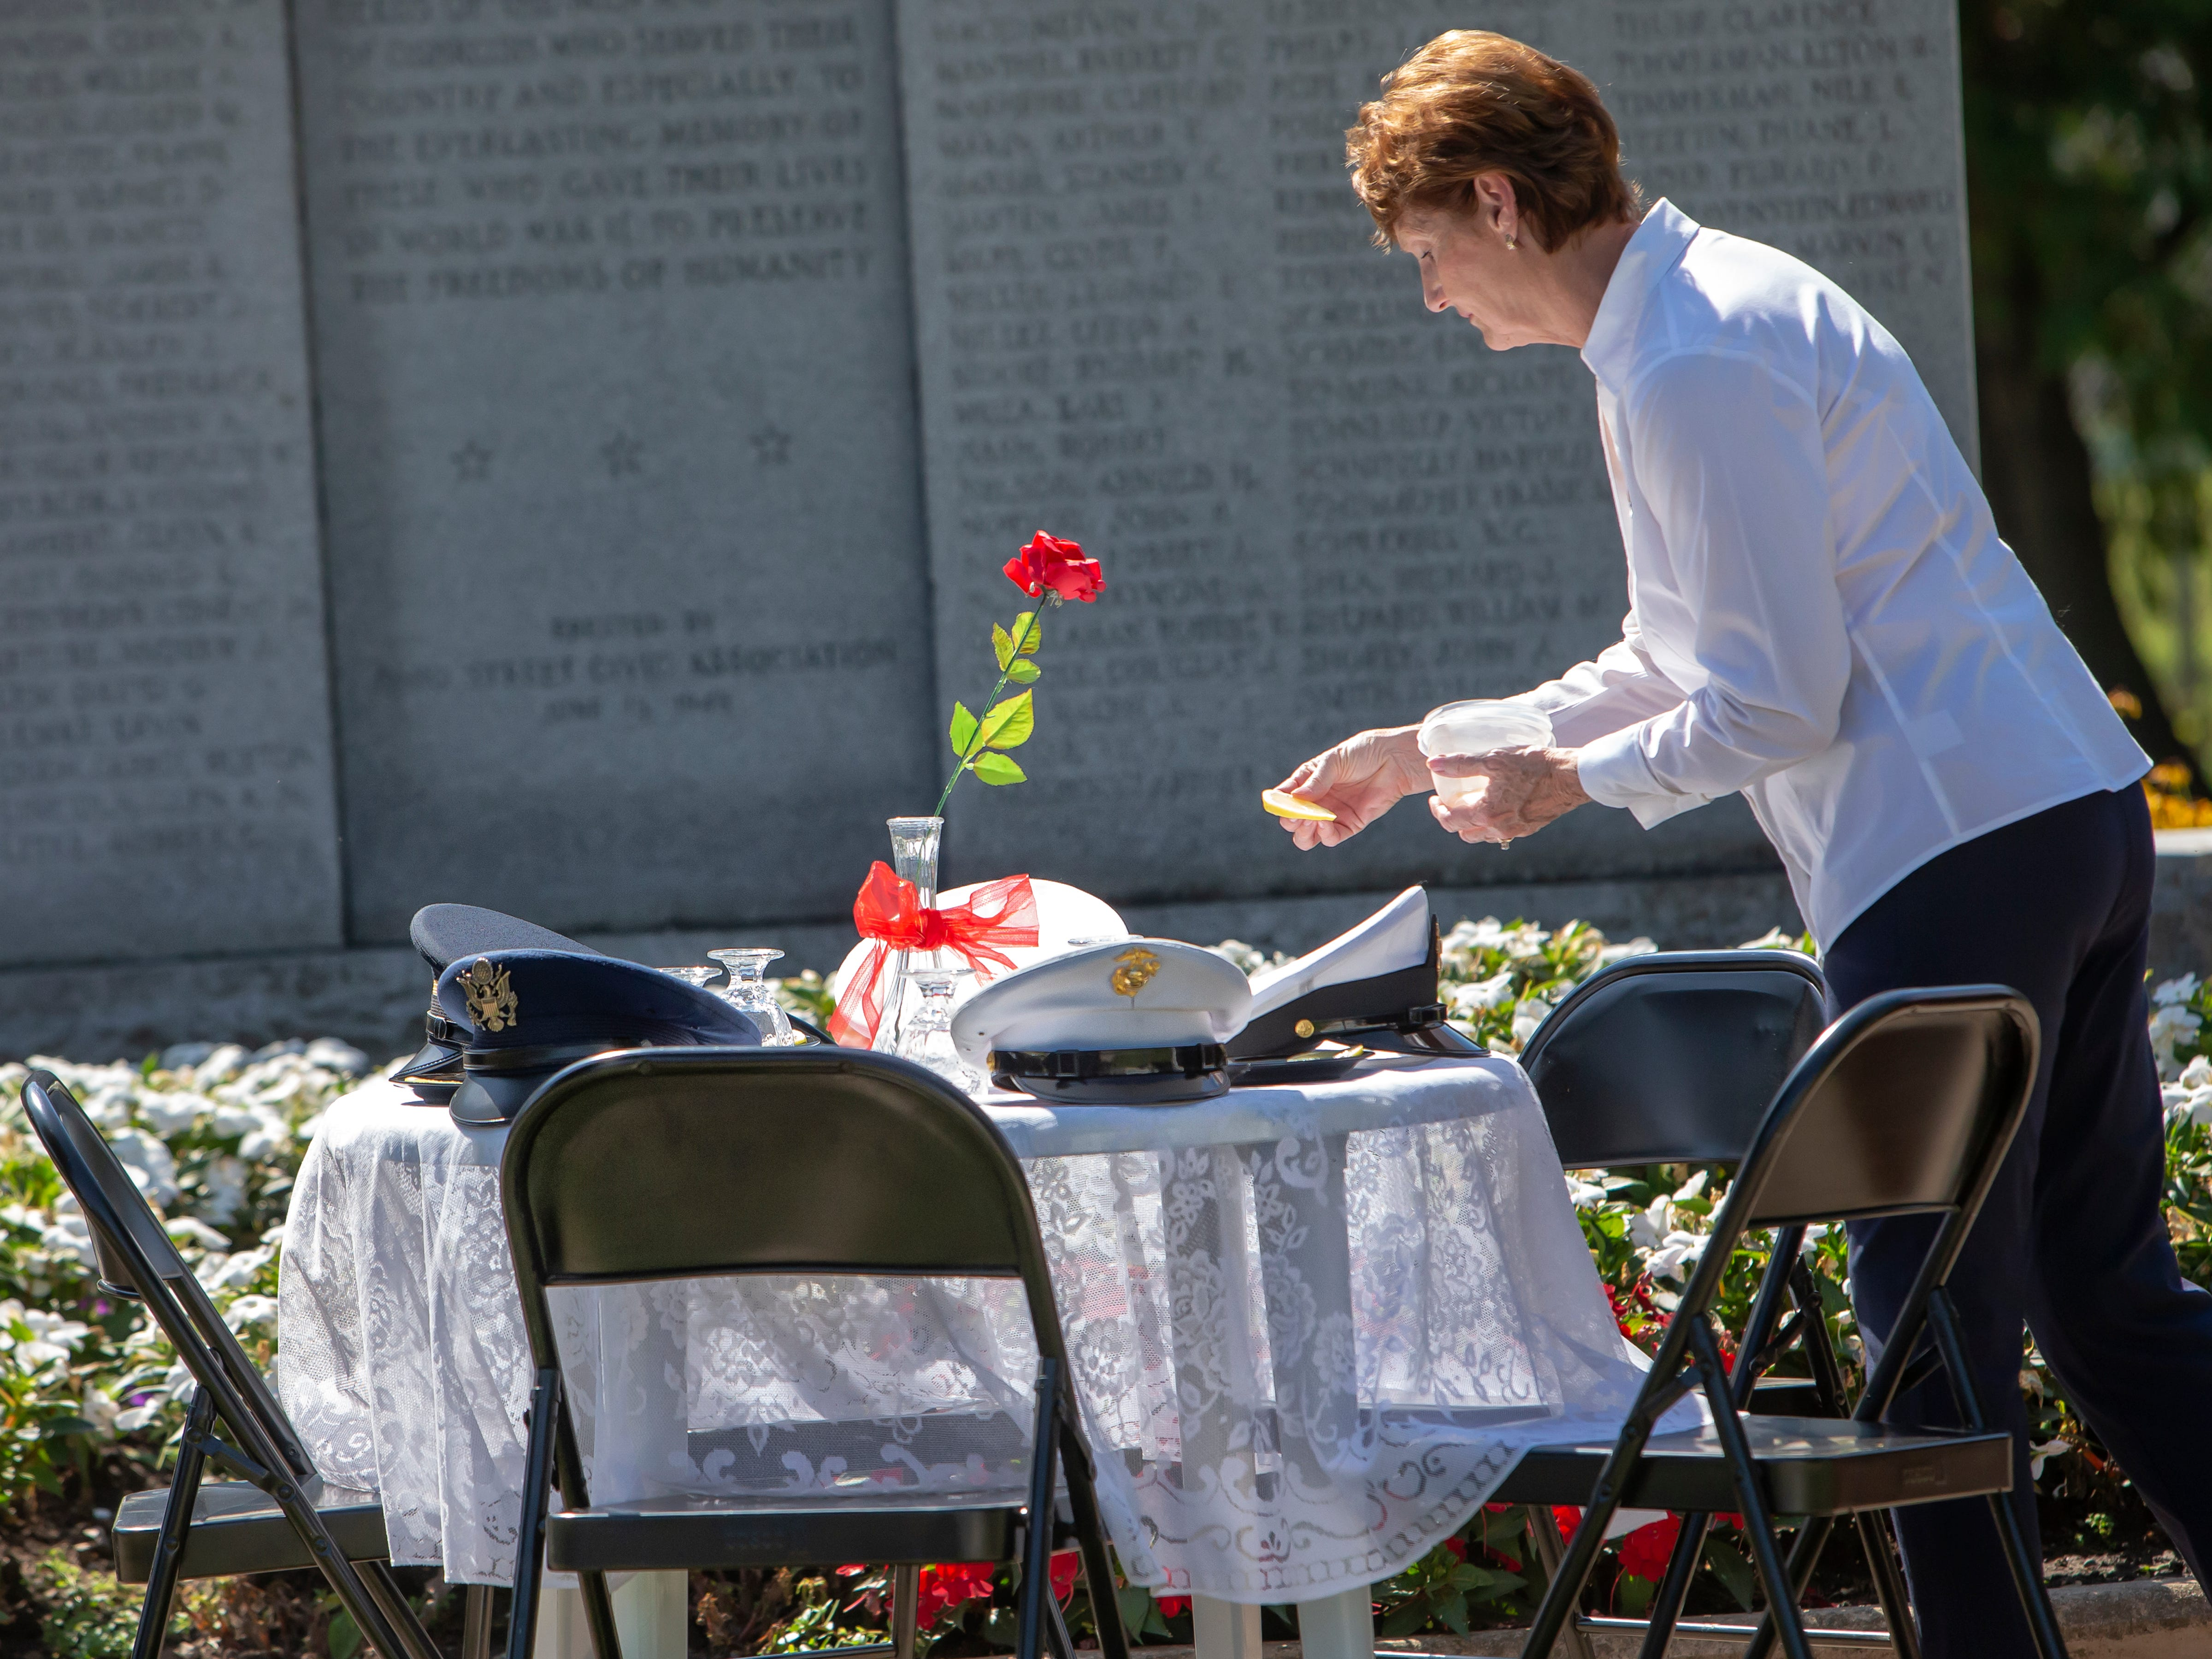 Lynn Beck places lemon slices and salt around the table ceremony honoring those still missing in action and prisoners of war during a POW MIA Remembrance Ceremony at South Park Veterans Memorial on Saturday, September 15, 2018.